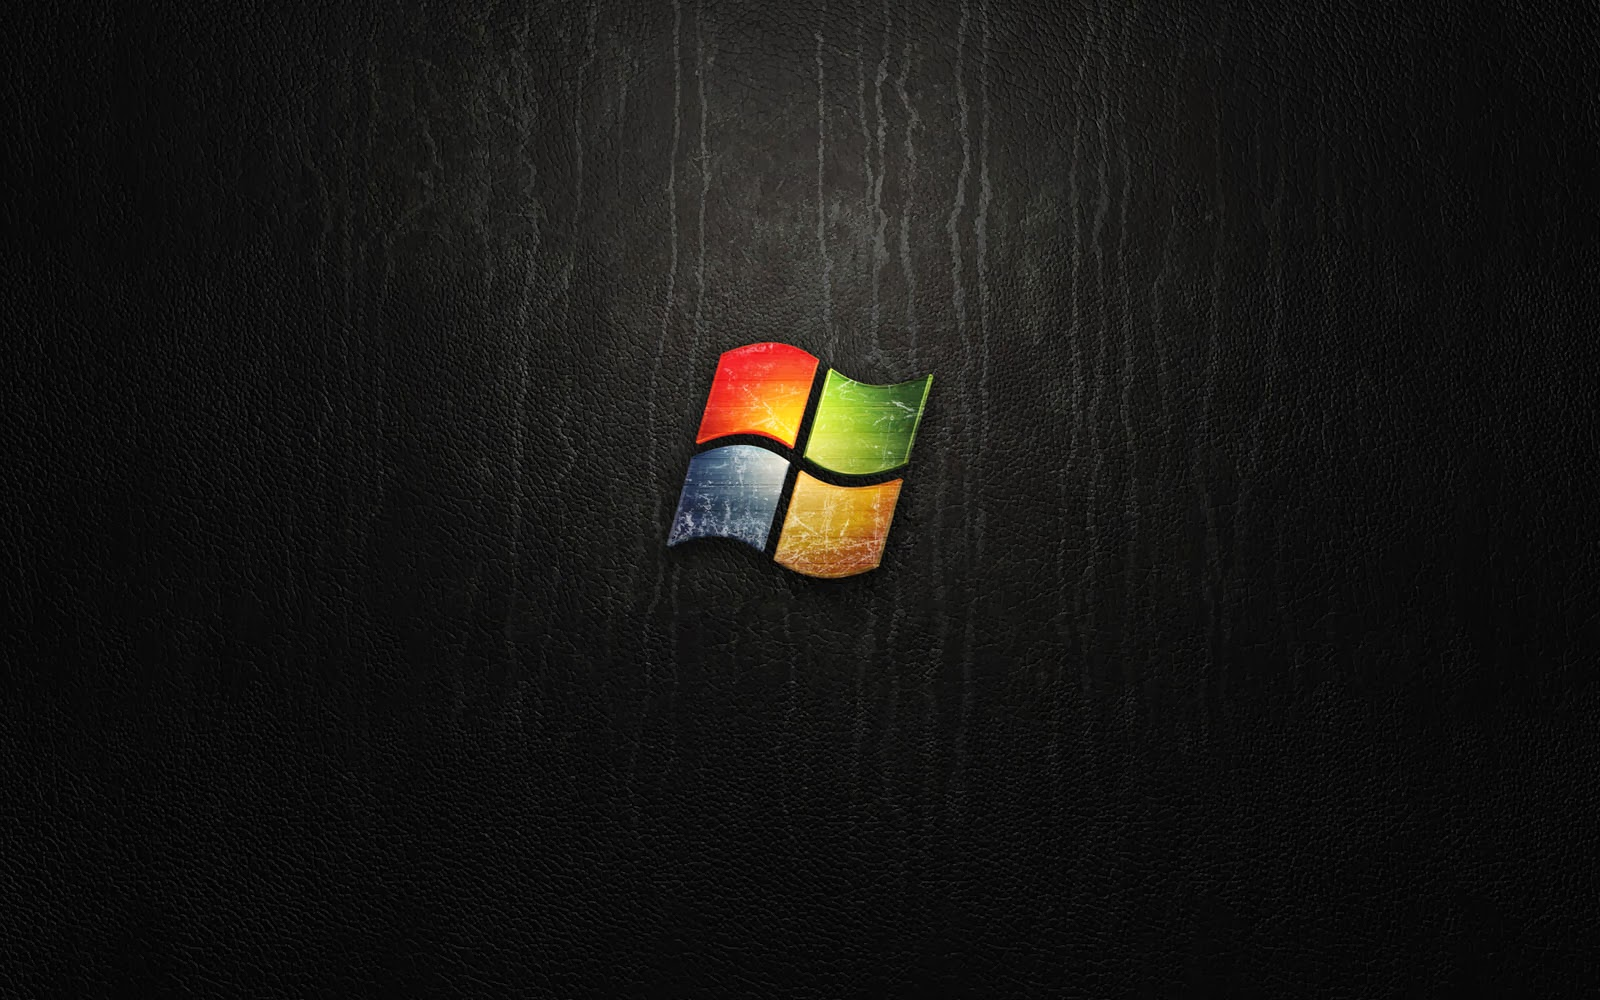 dark windows wallpapers - top wallpaper desktop